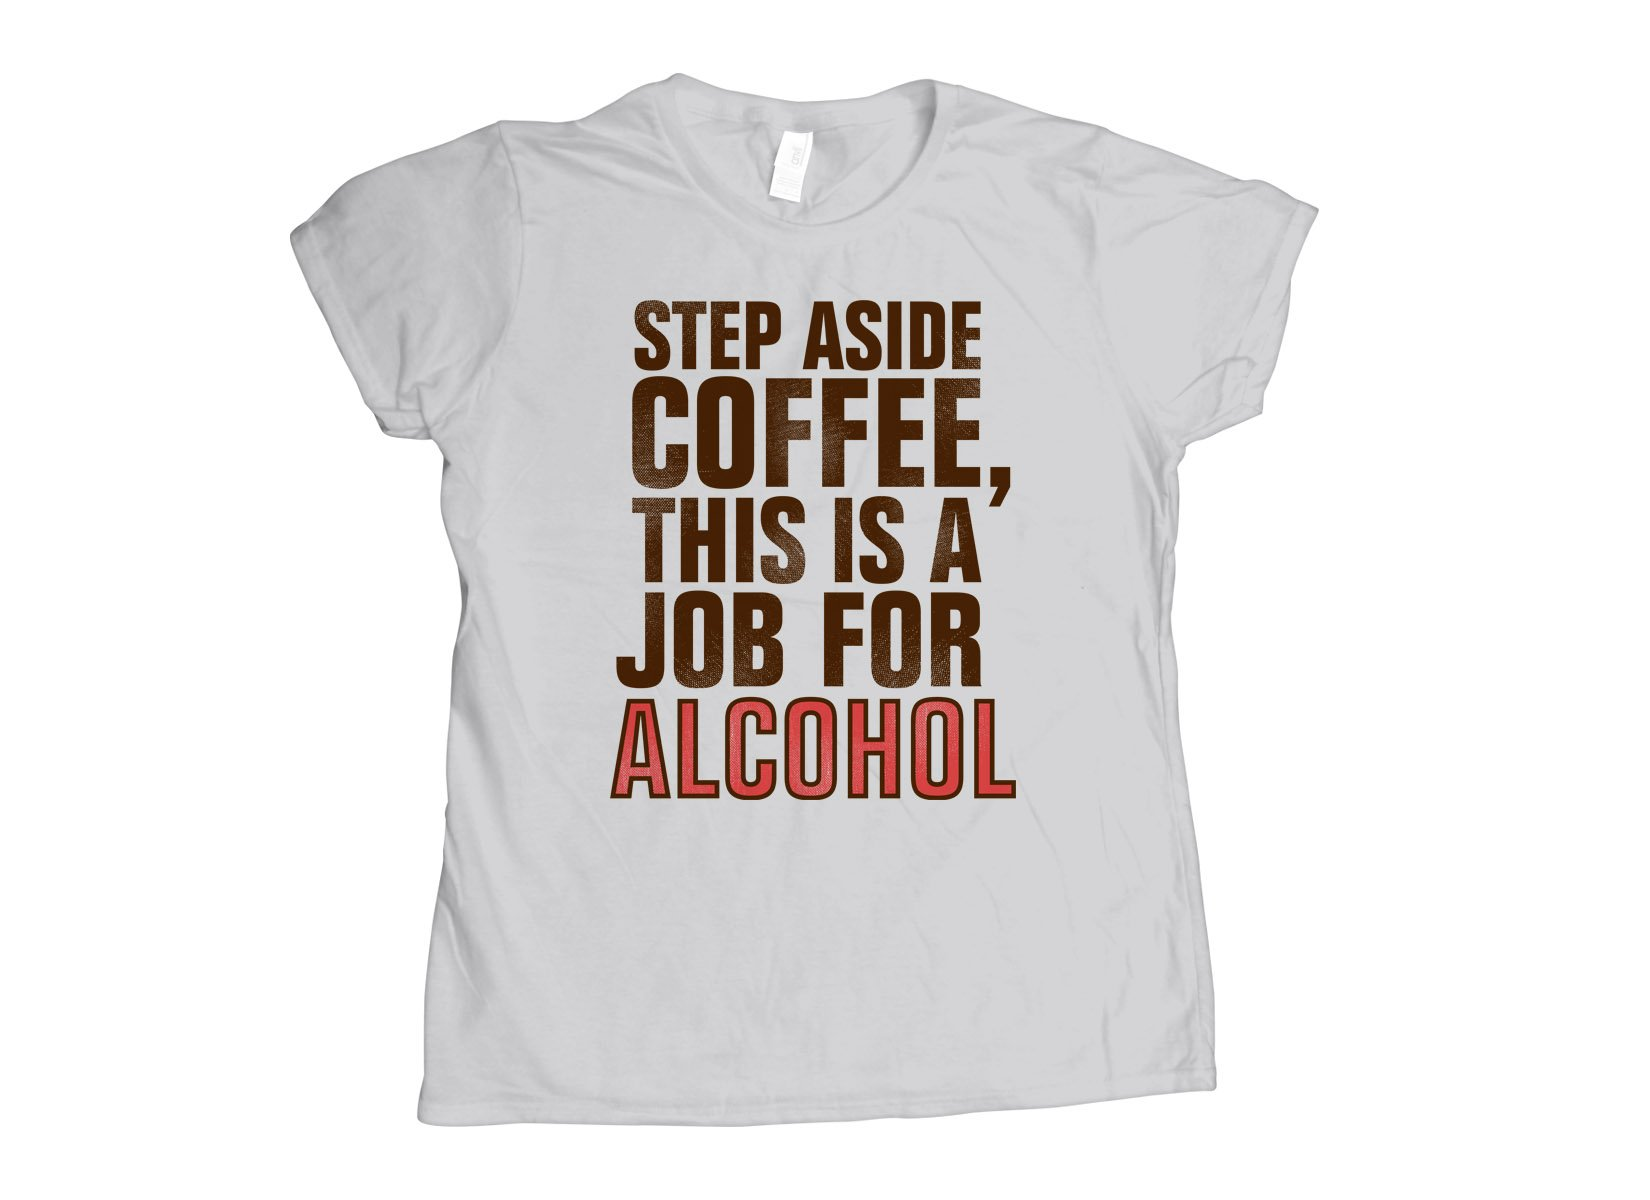 Step Aside Coffee, This Is A Job For Alcohol on Womens T-Shirt